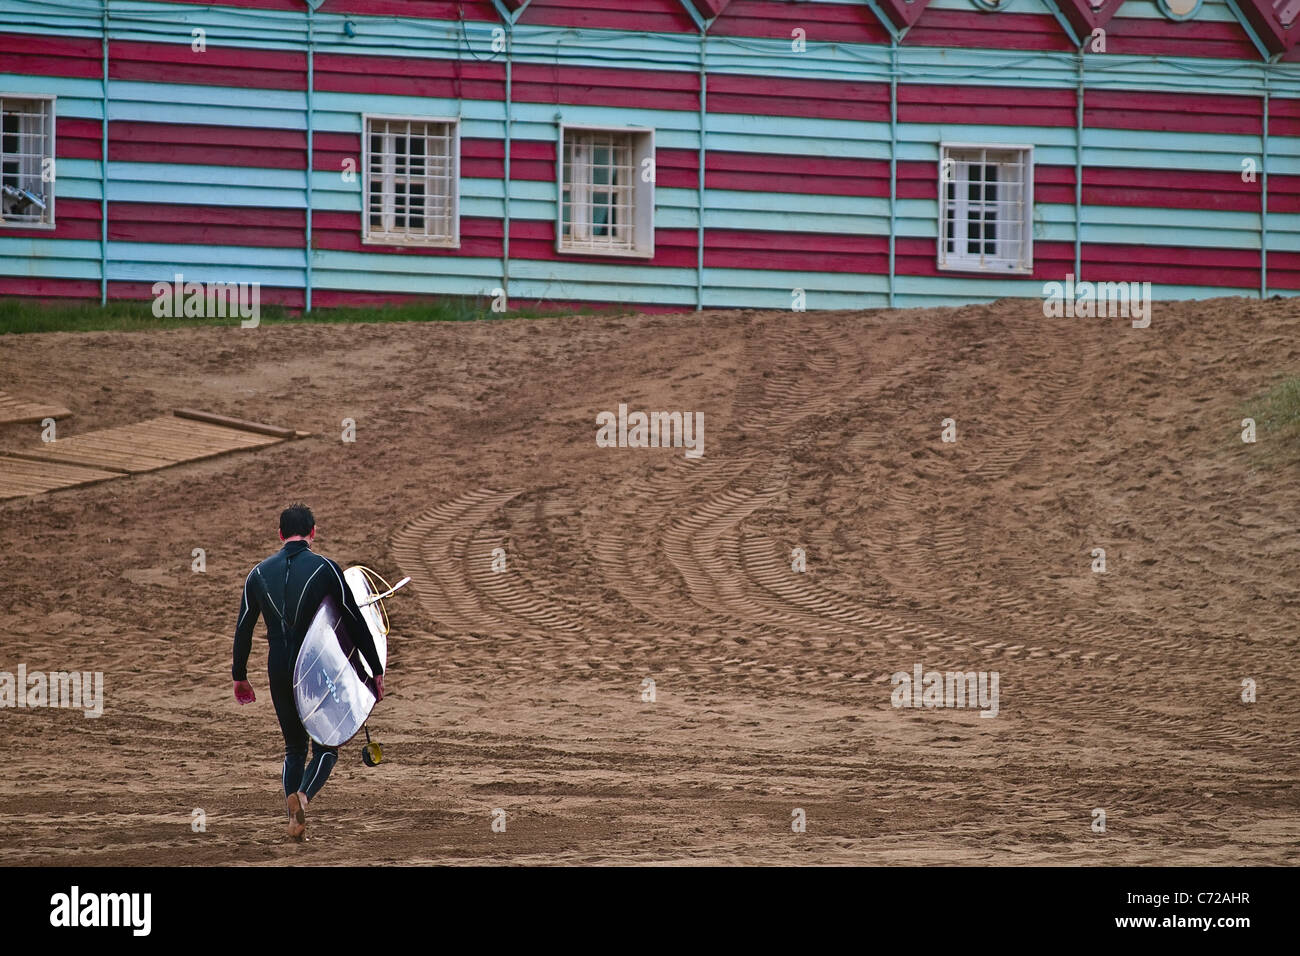 Surfer on the industrial beach of La Arena, Somosrrostro, Basque country, Euskadi, Spain. - Stock Image